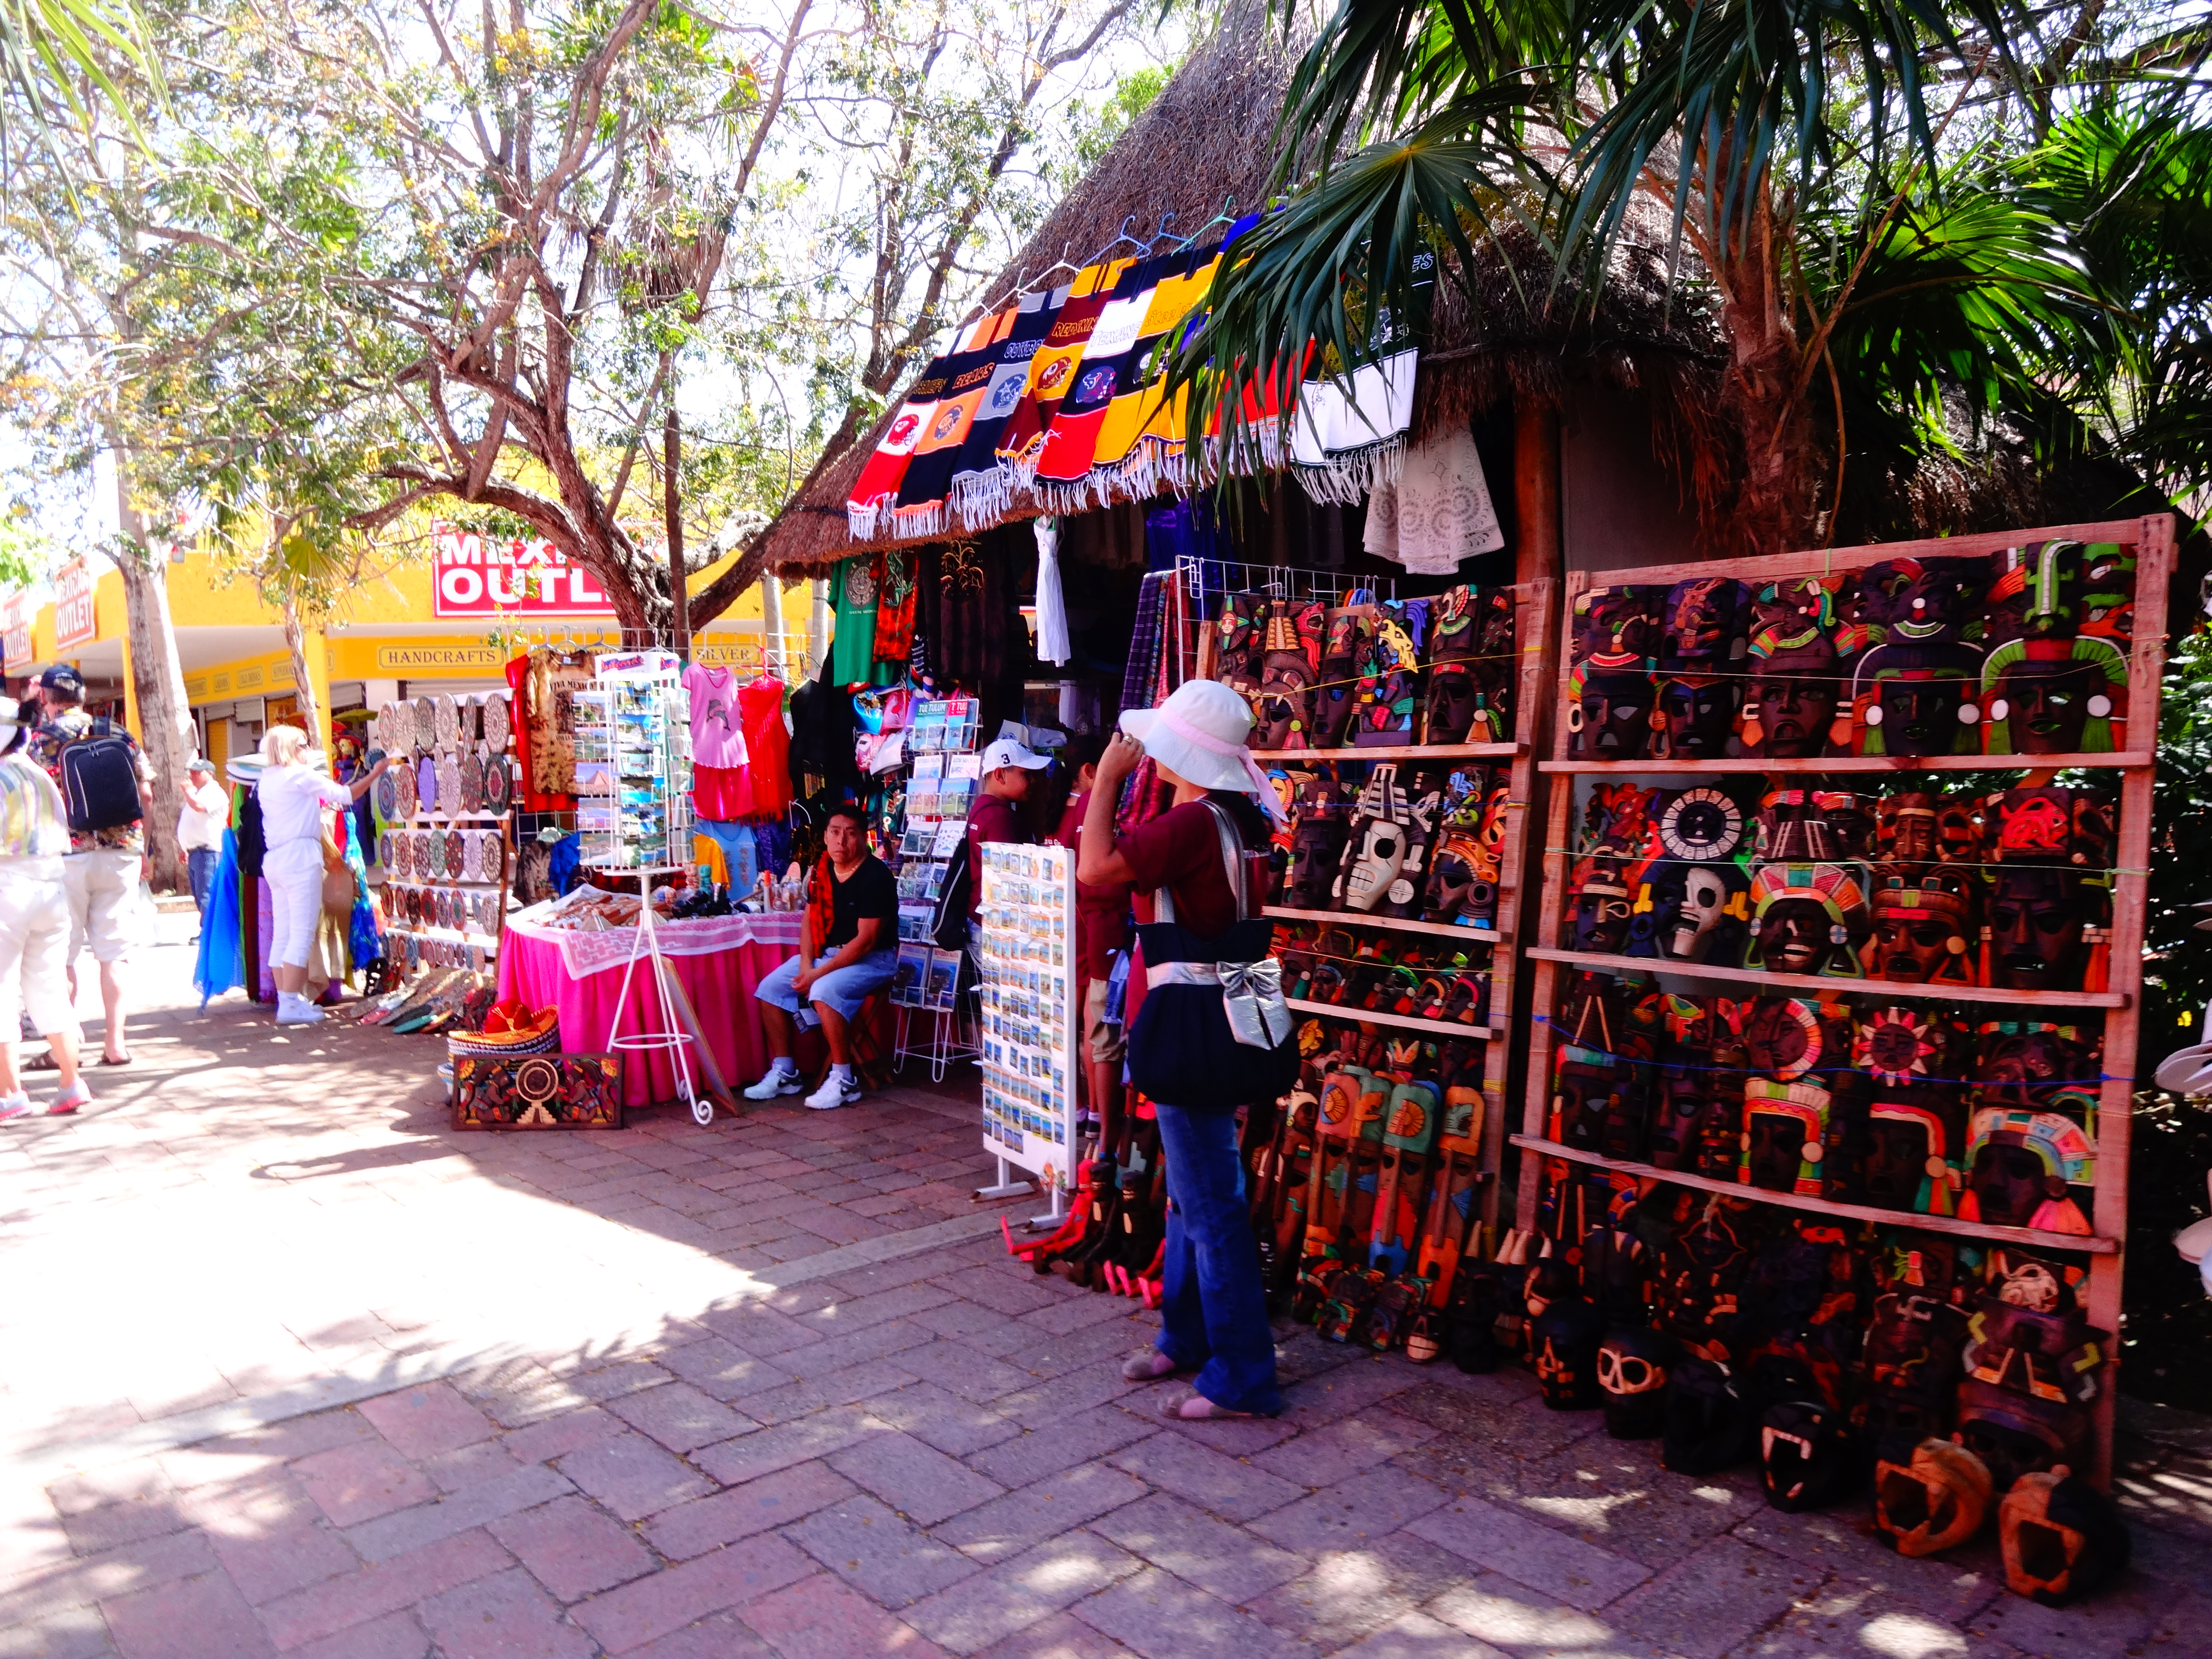 Cozumel Market - This is Cozumel